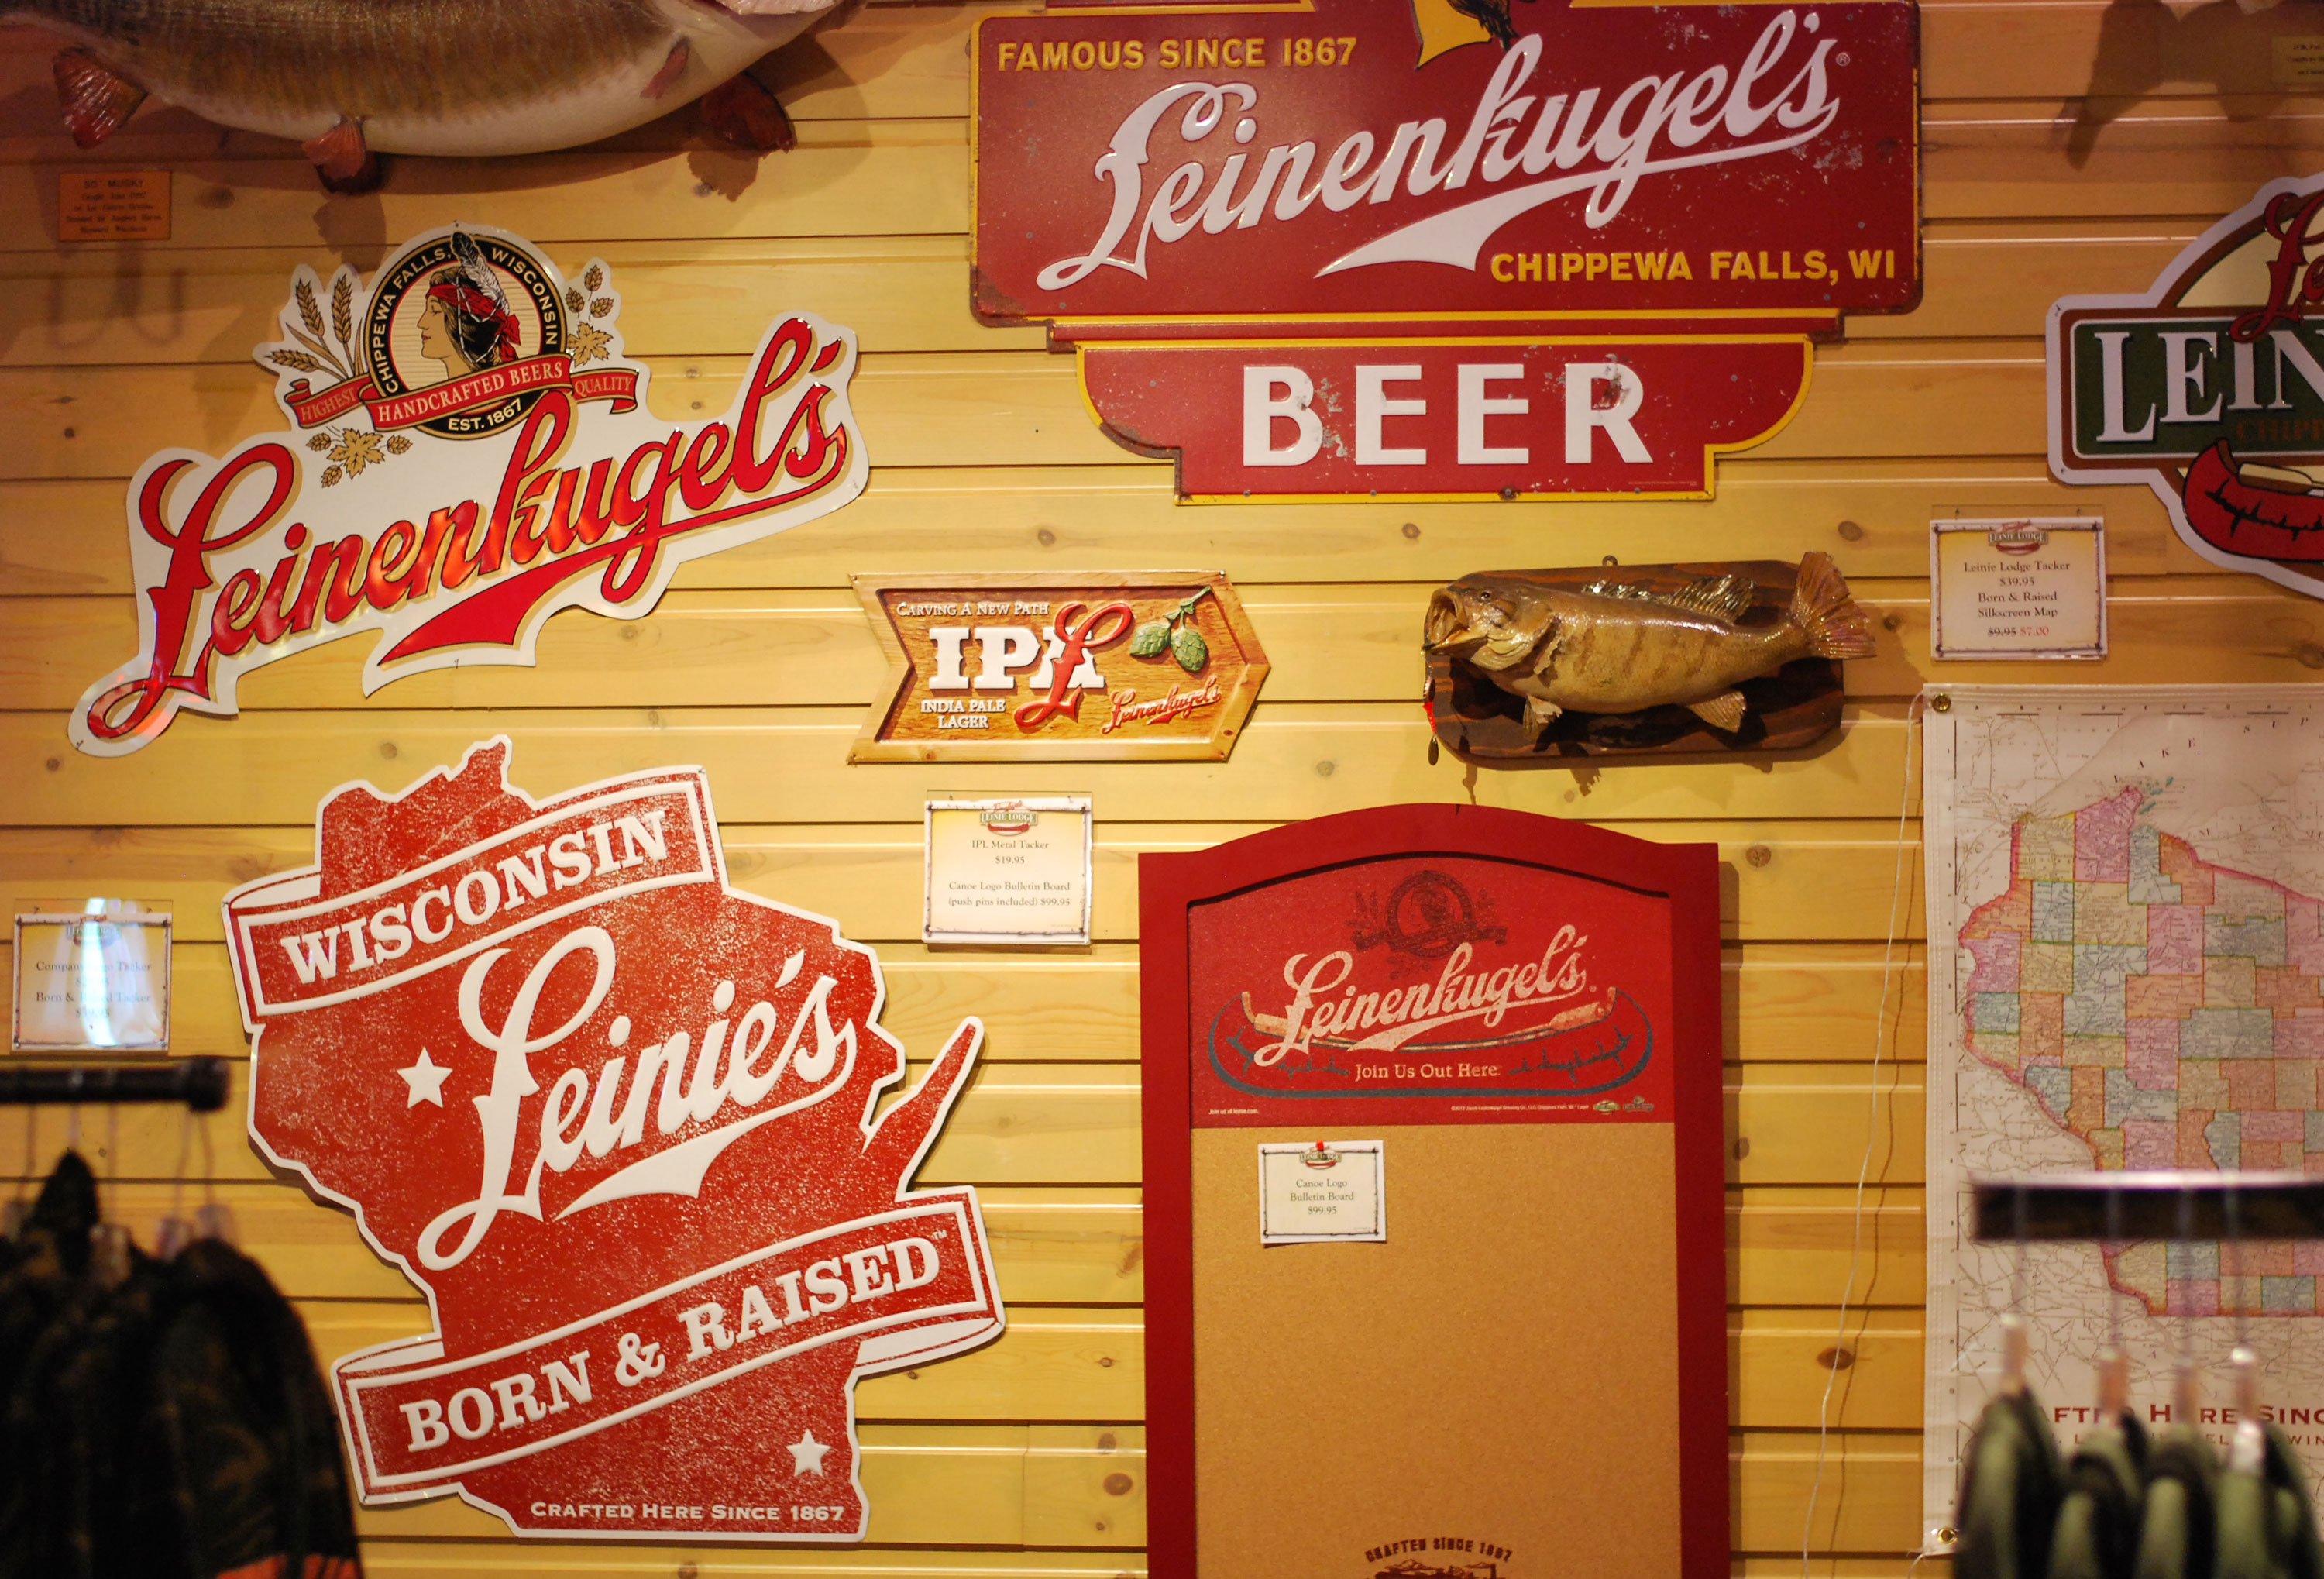 Jacob Leinenkugel Brewing Company, Chippewa Falls, Wisconsin